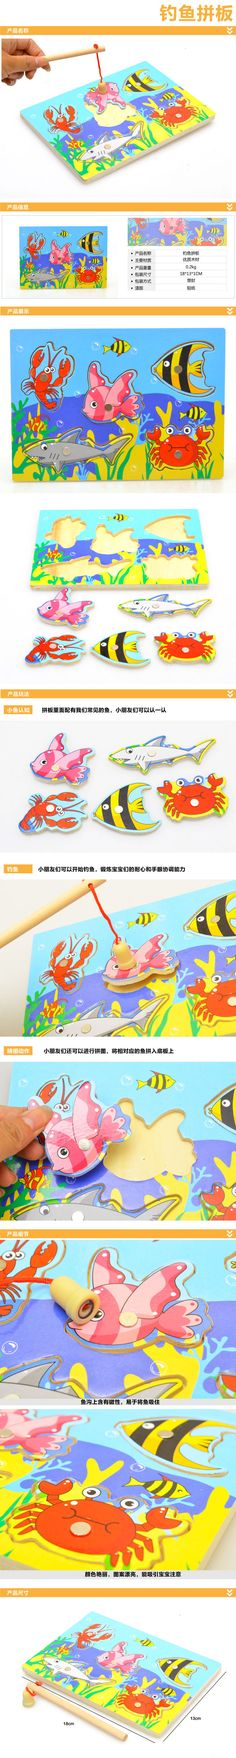 2016 New arrive Baby Wooden Magnetic Fishing Game Jigsaw Puzzle Board 3D Jigsaw Puzzle Children Education Toy